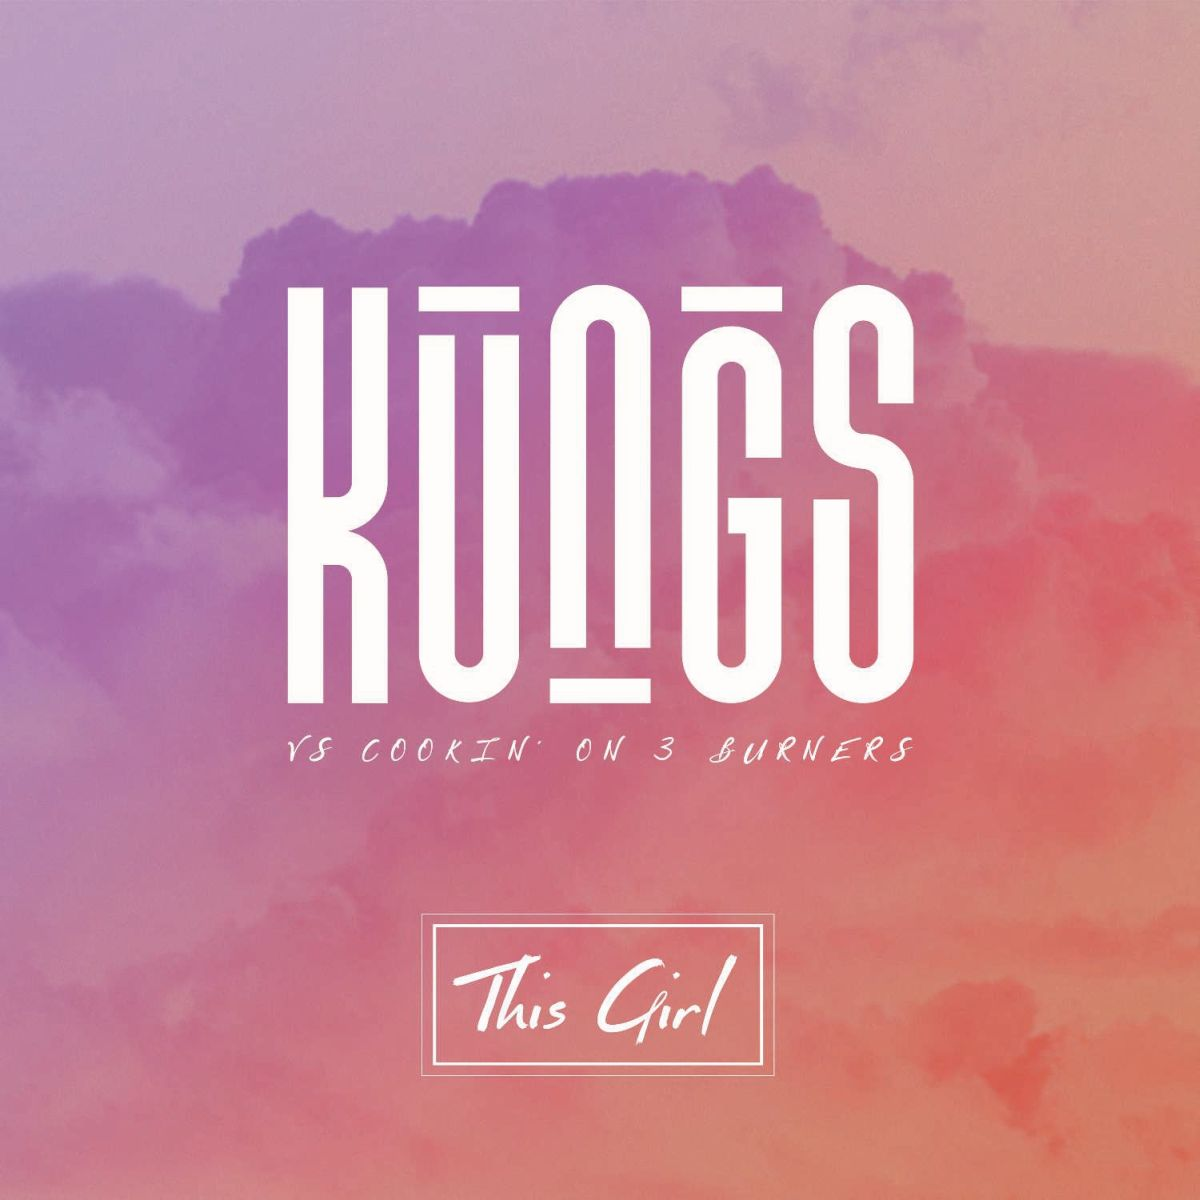 Kungs vs. Cookin' On 3 Burners This Girl